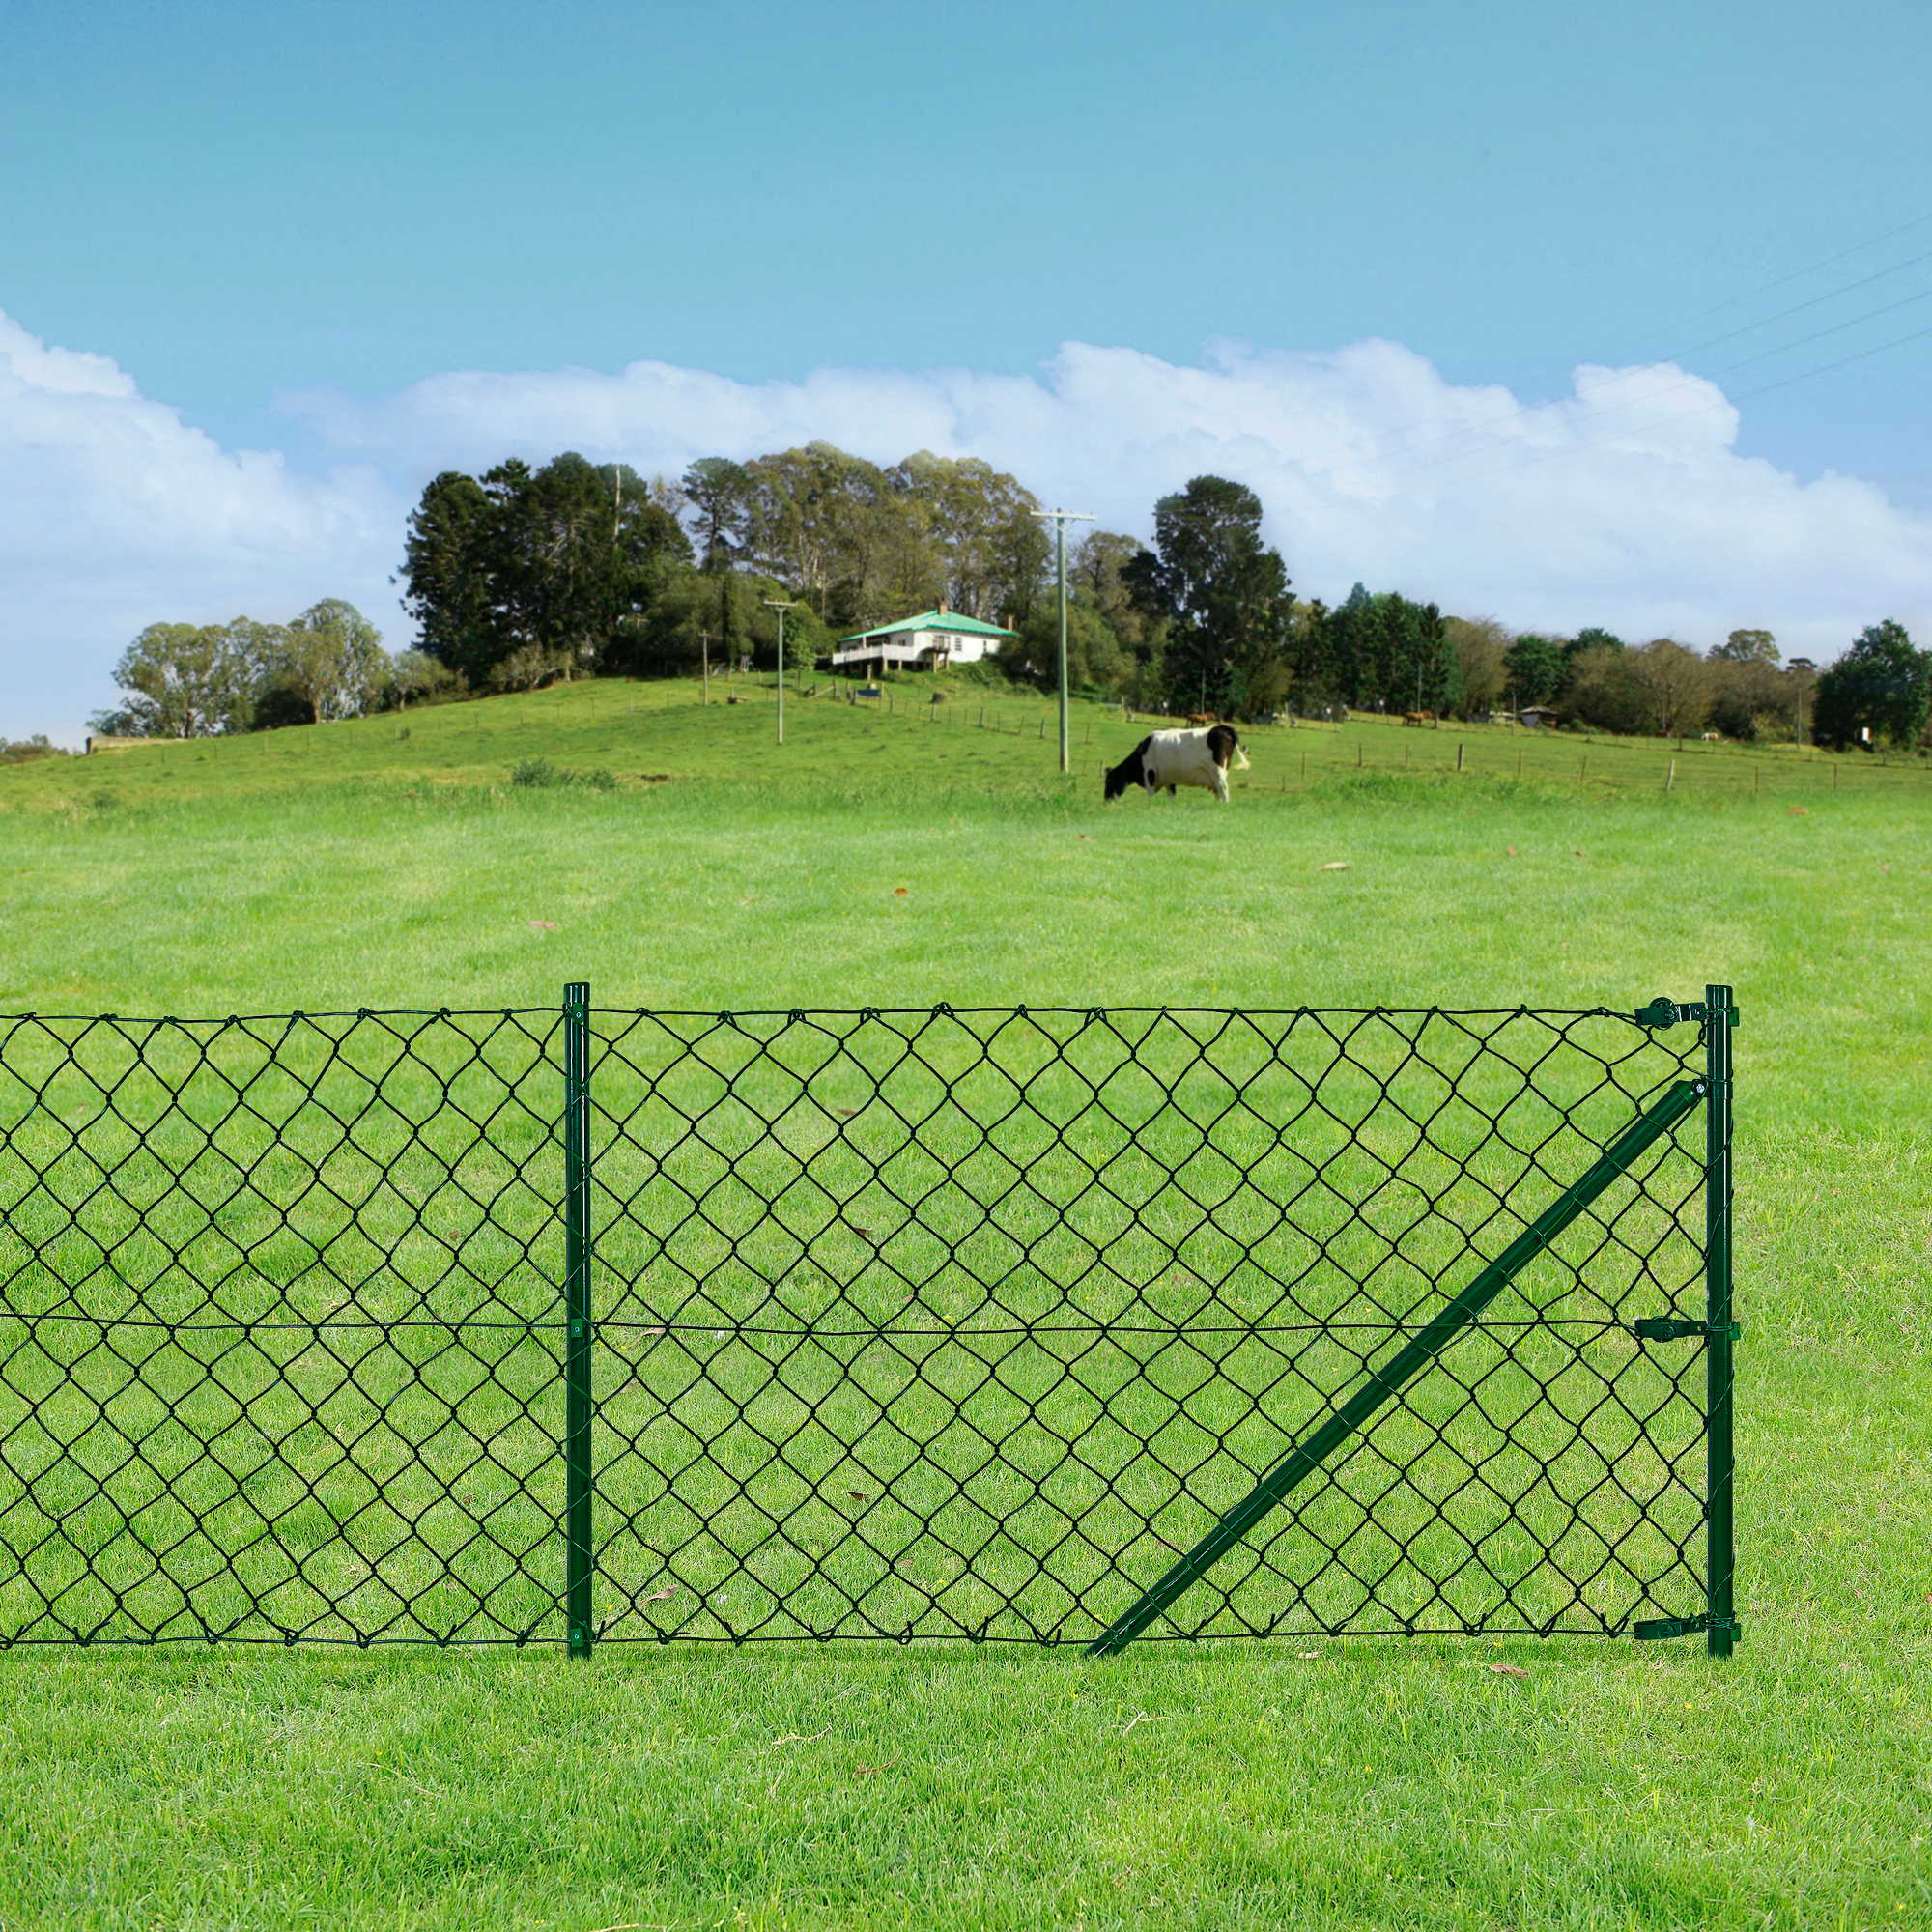 wire mesh fence 150cm x 25m wire fence wire mesh fence wild ebay. Black Bedroom Furniture Sets. Home Design Ideas